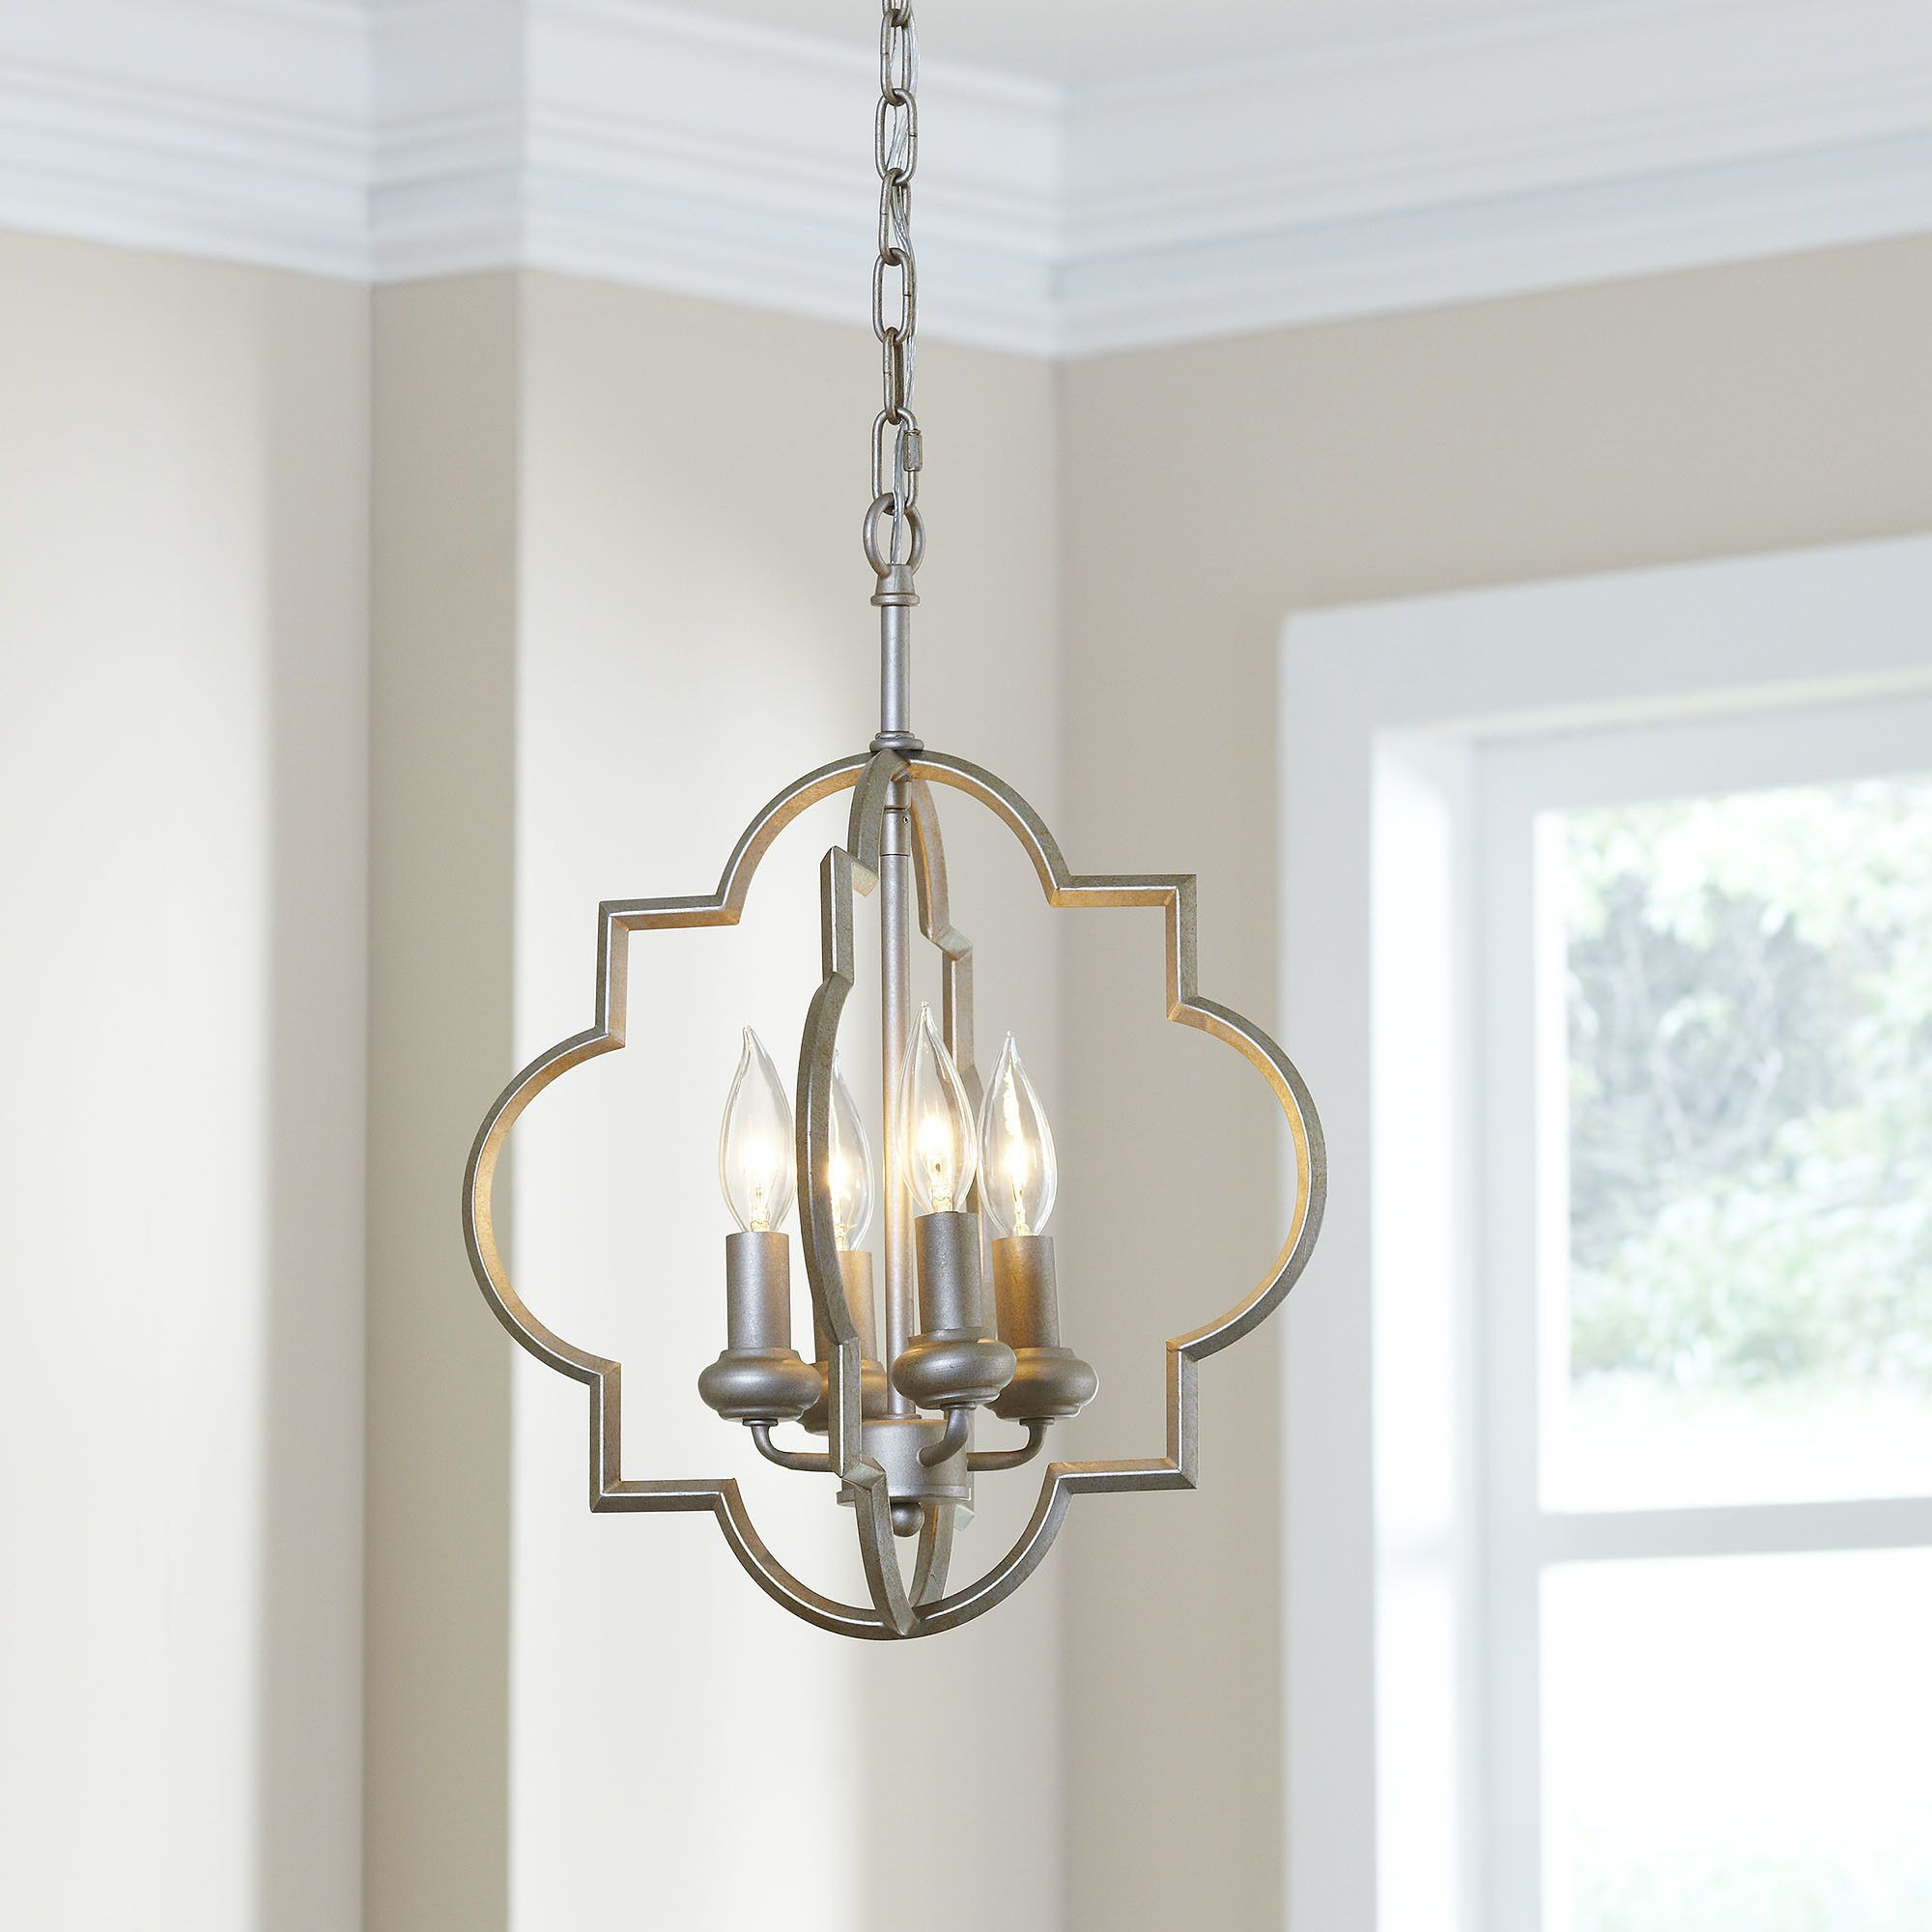 Kaycee 4 Light Geometric Chandeliers Regarding Well Known Hartley 4 Light Geometric Pendant (View 23 of 25)